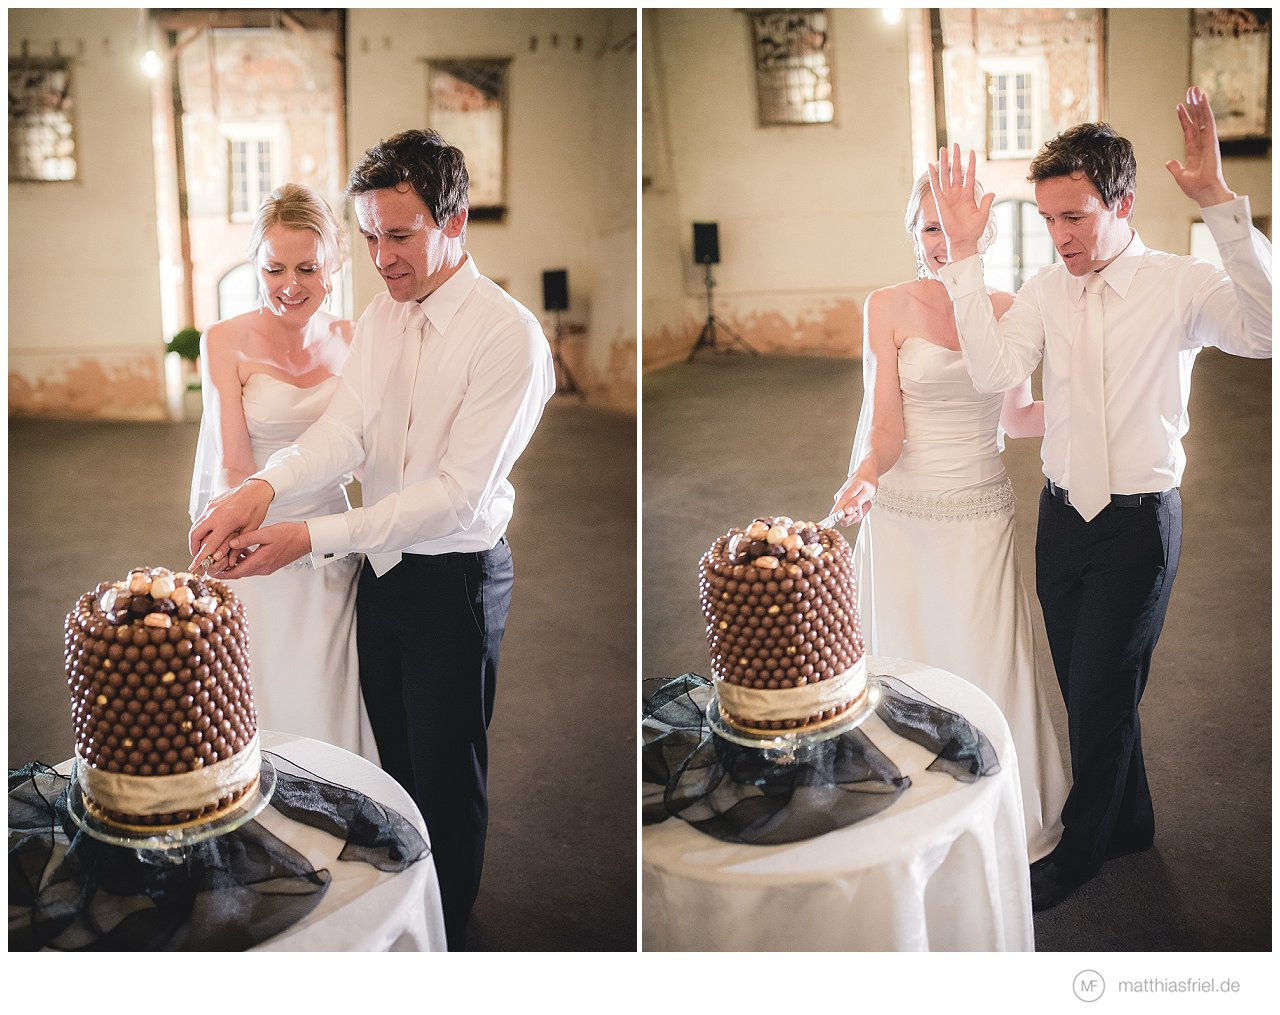 wedding-australia-adelaide-melita-jimmy-matthias-friel_0065